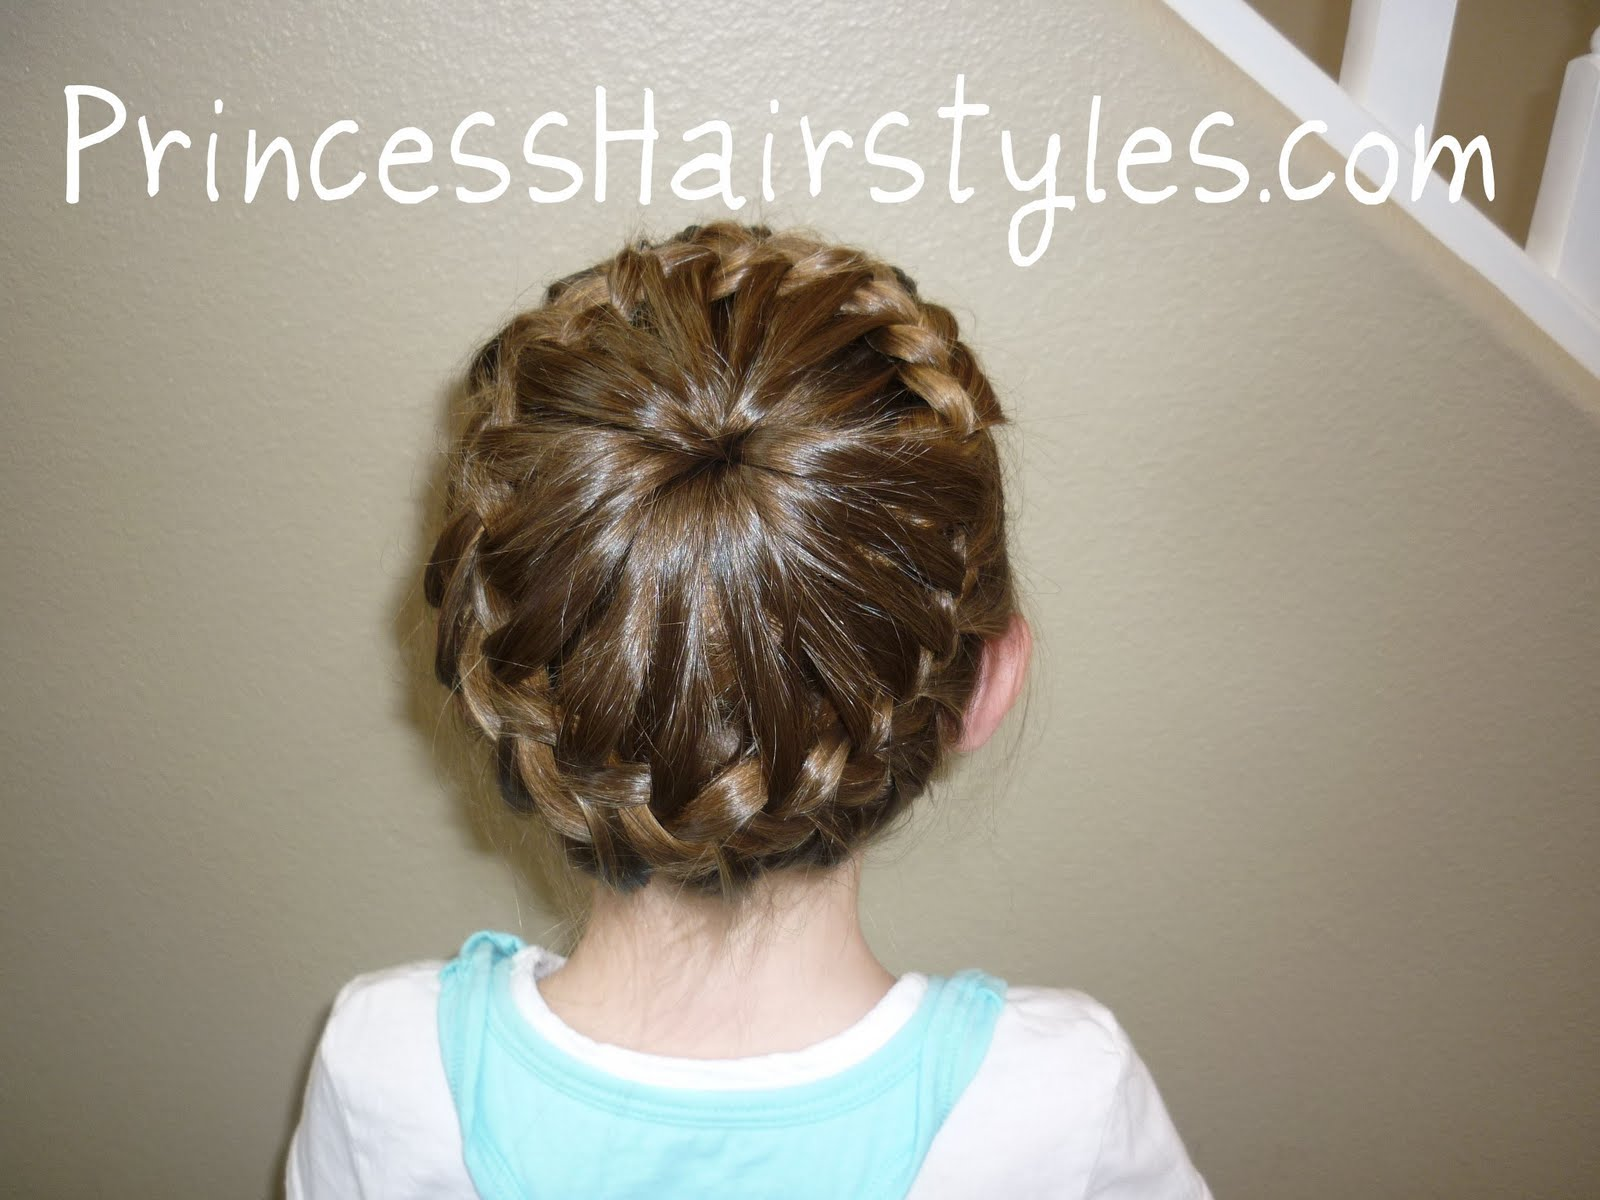 Hairstyles For Girls: Never Ending French Braid Bun